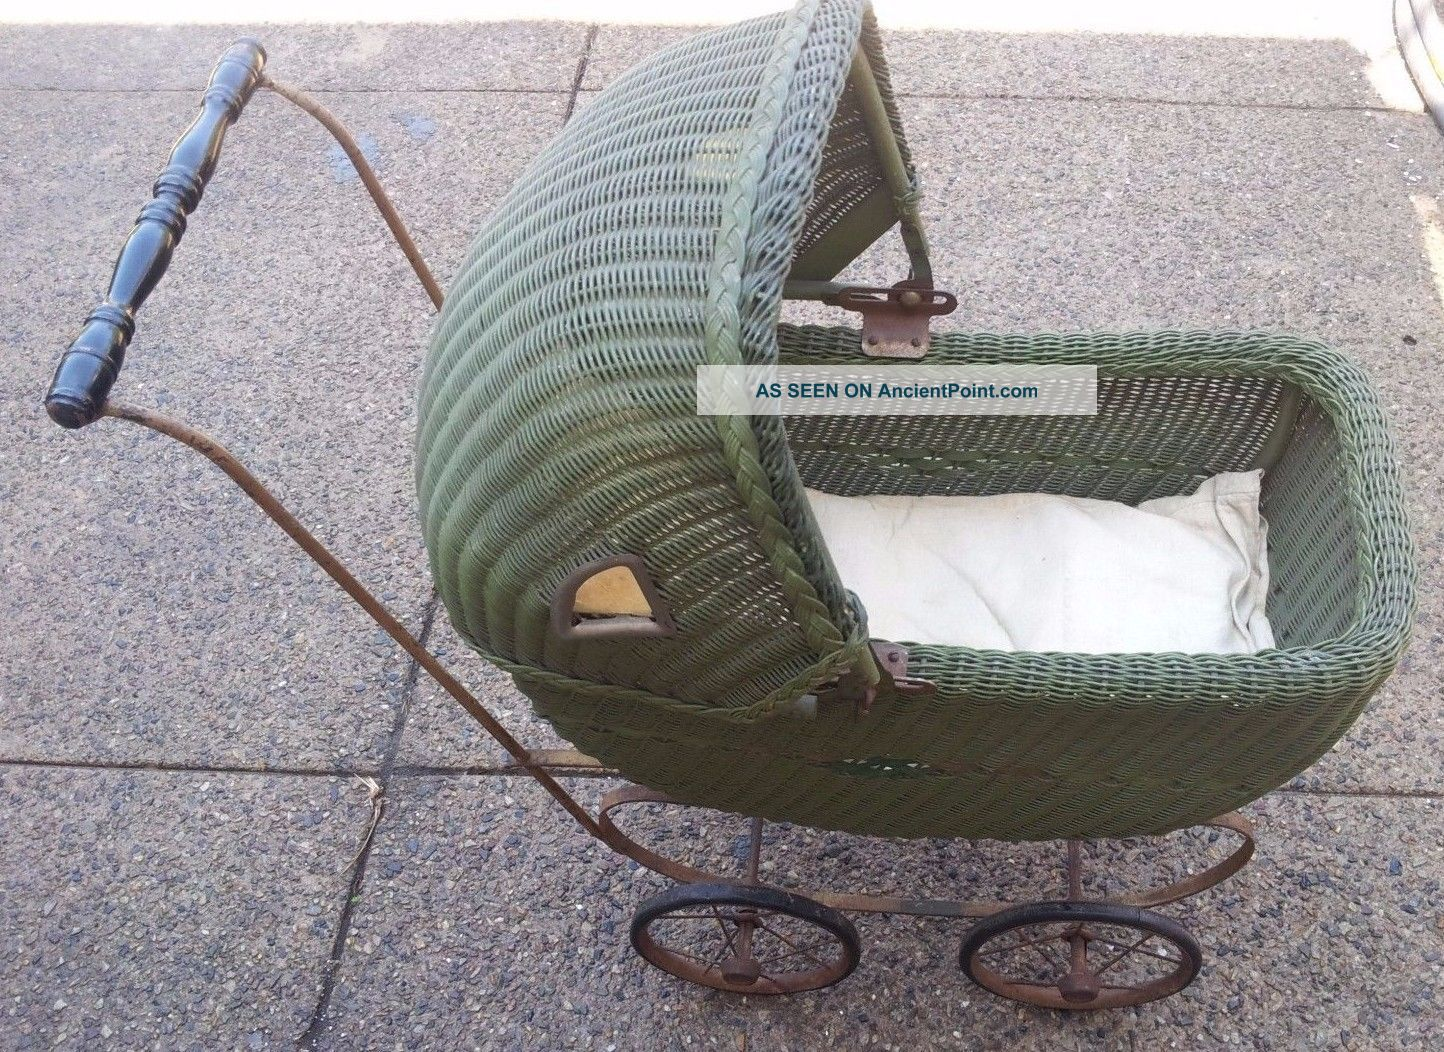 Antique Heywood Wakefield Wicker Baby Doll Buggy Stroller Metal Frame Pre 1930 Baby Carriages & Buggies photo